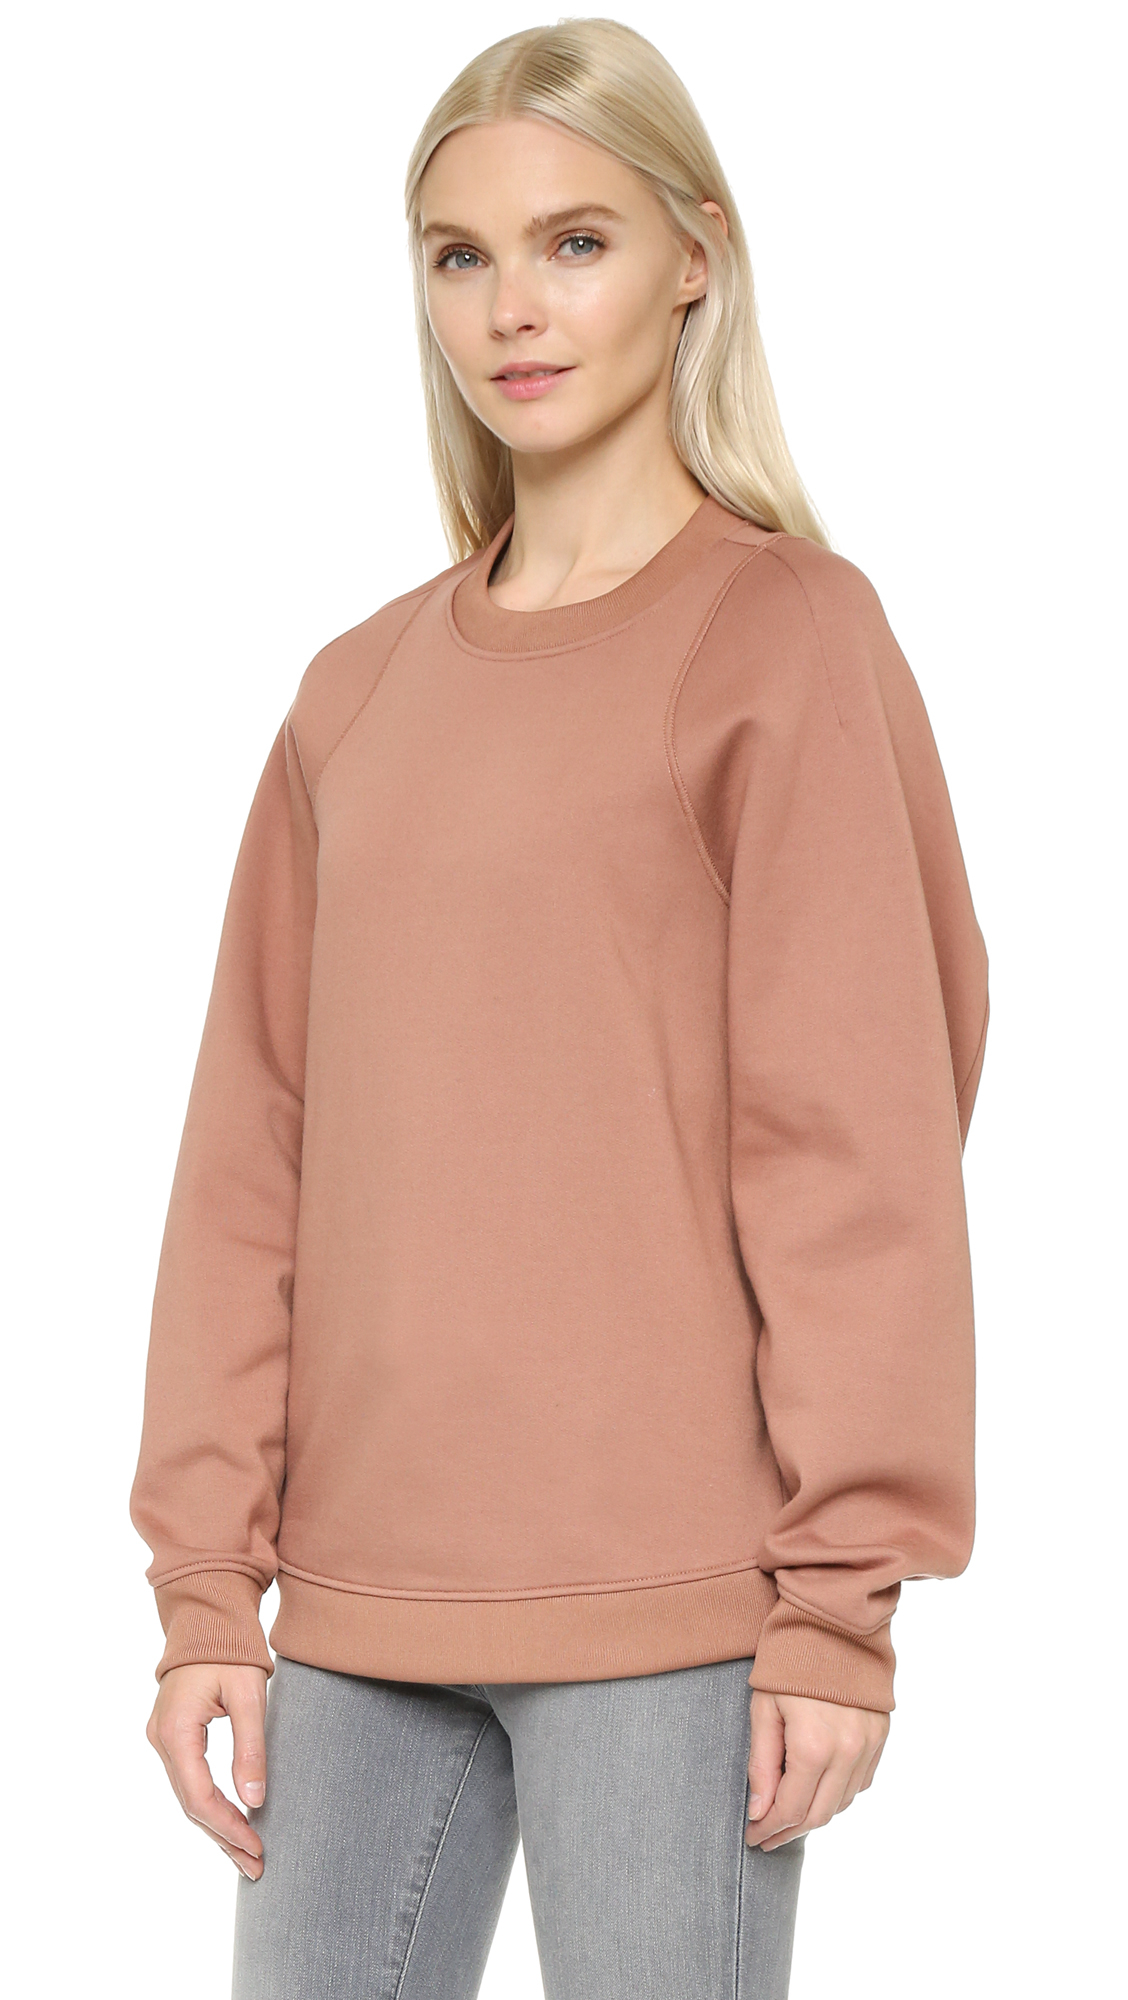 acne studios albina fleece pullover dusty pink in pink lyst. Black Bedroom Furniture Sets. Home Design Ideas